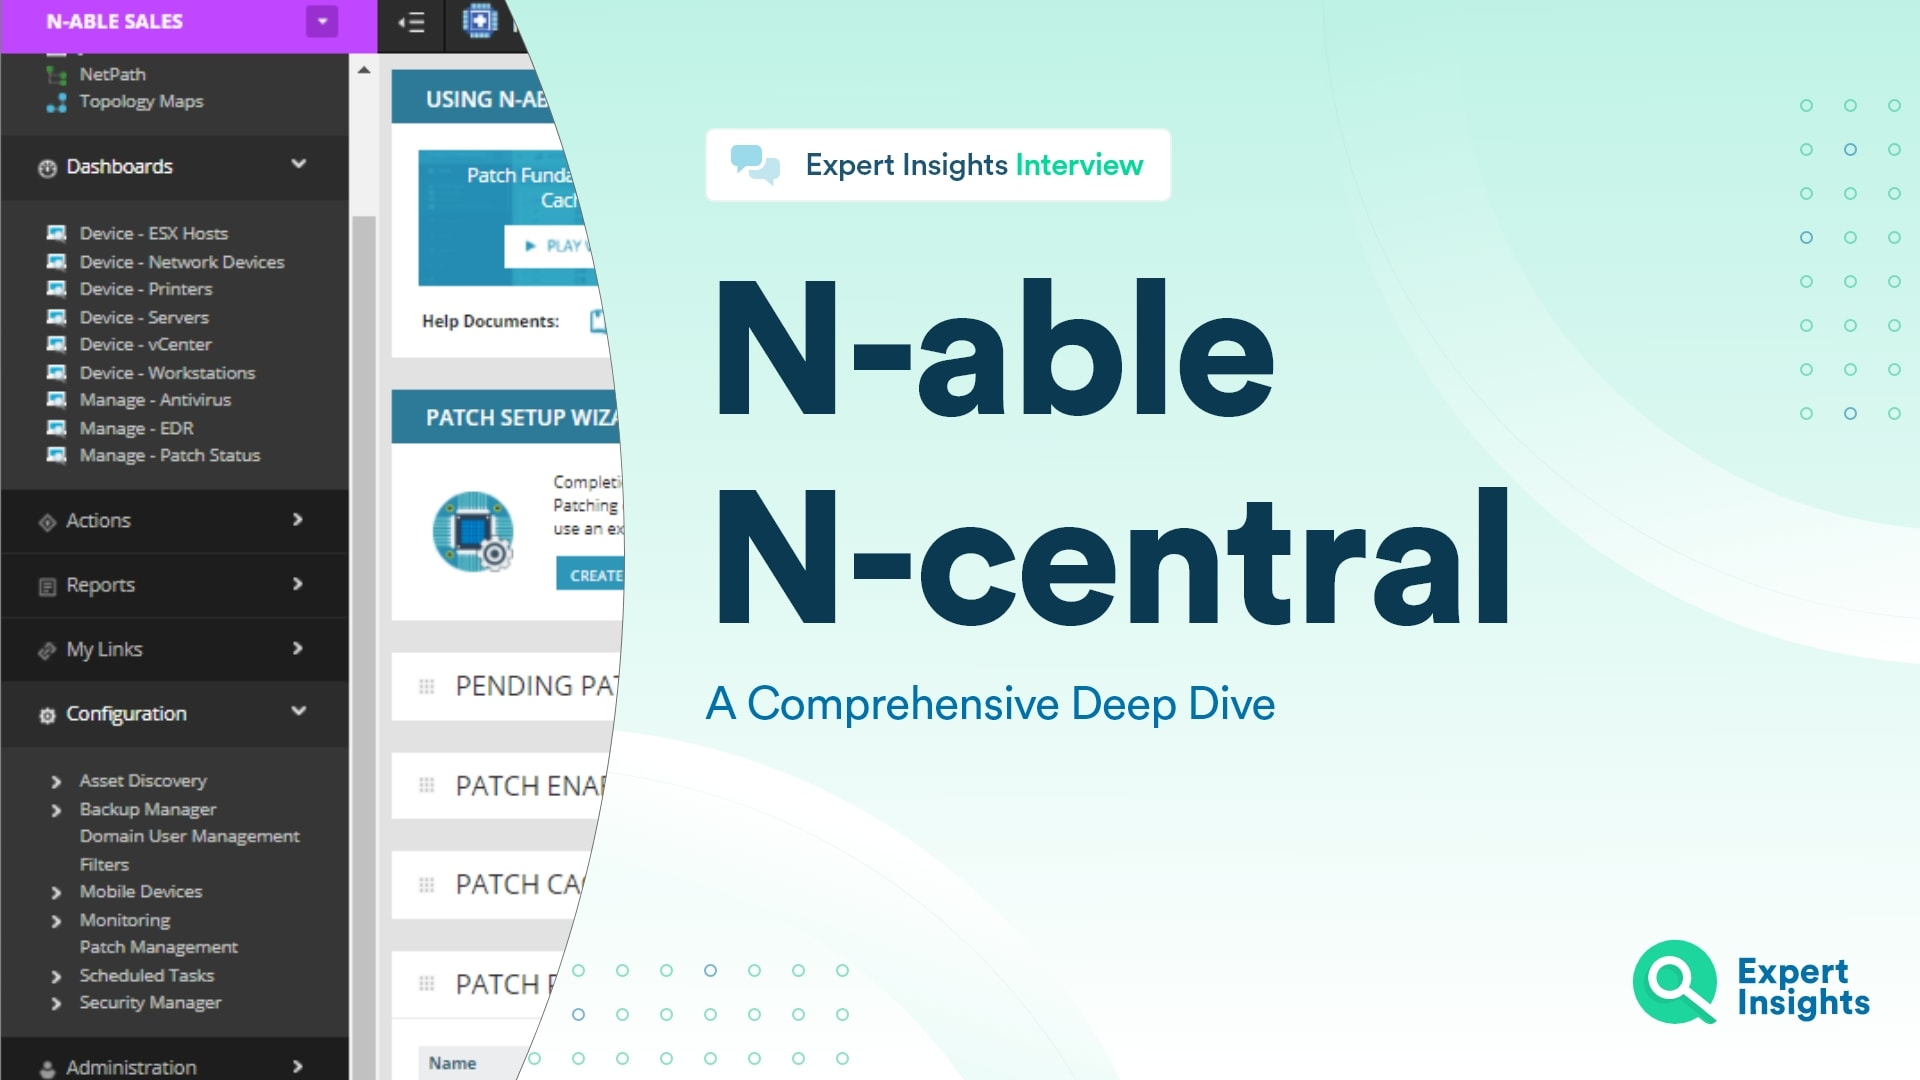 N-able N-central: A Comprehensive Deep Dive - Expert Insights